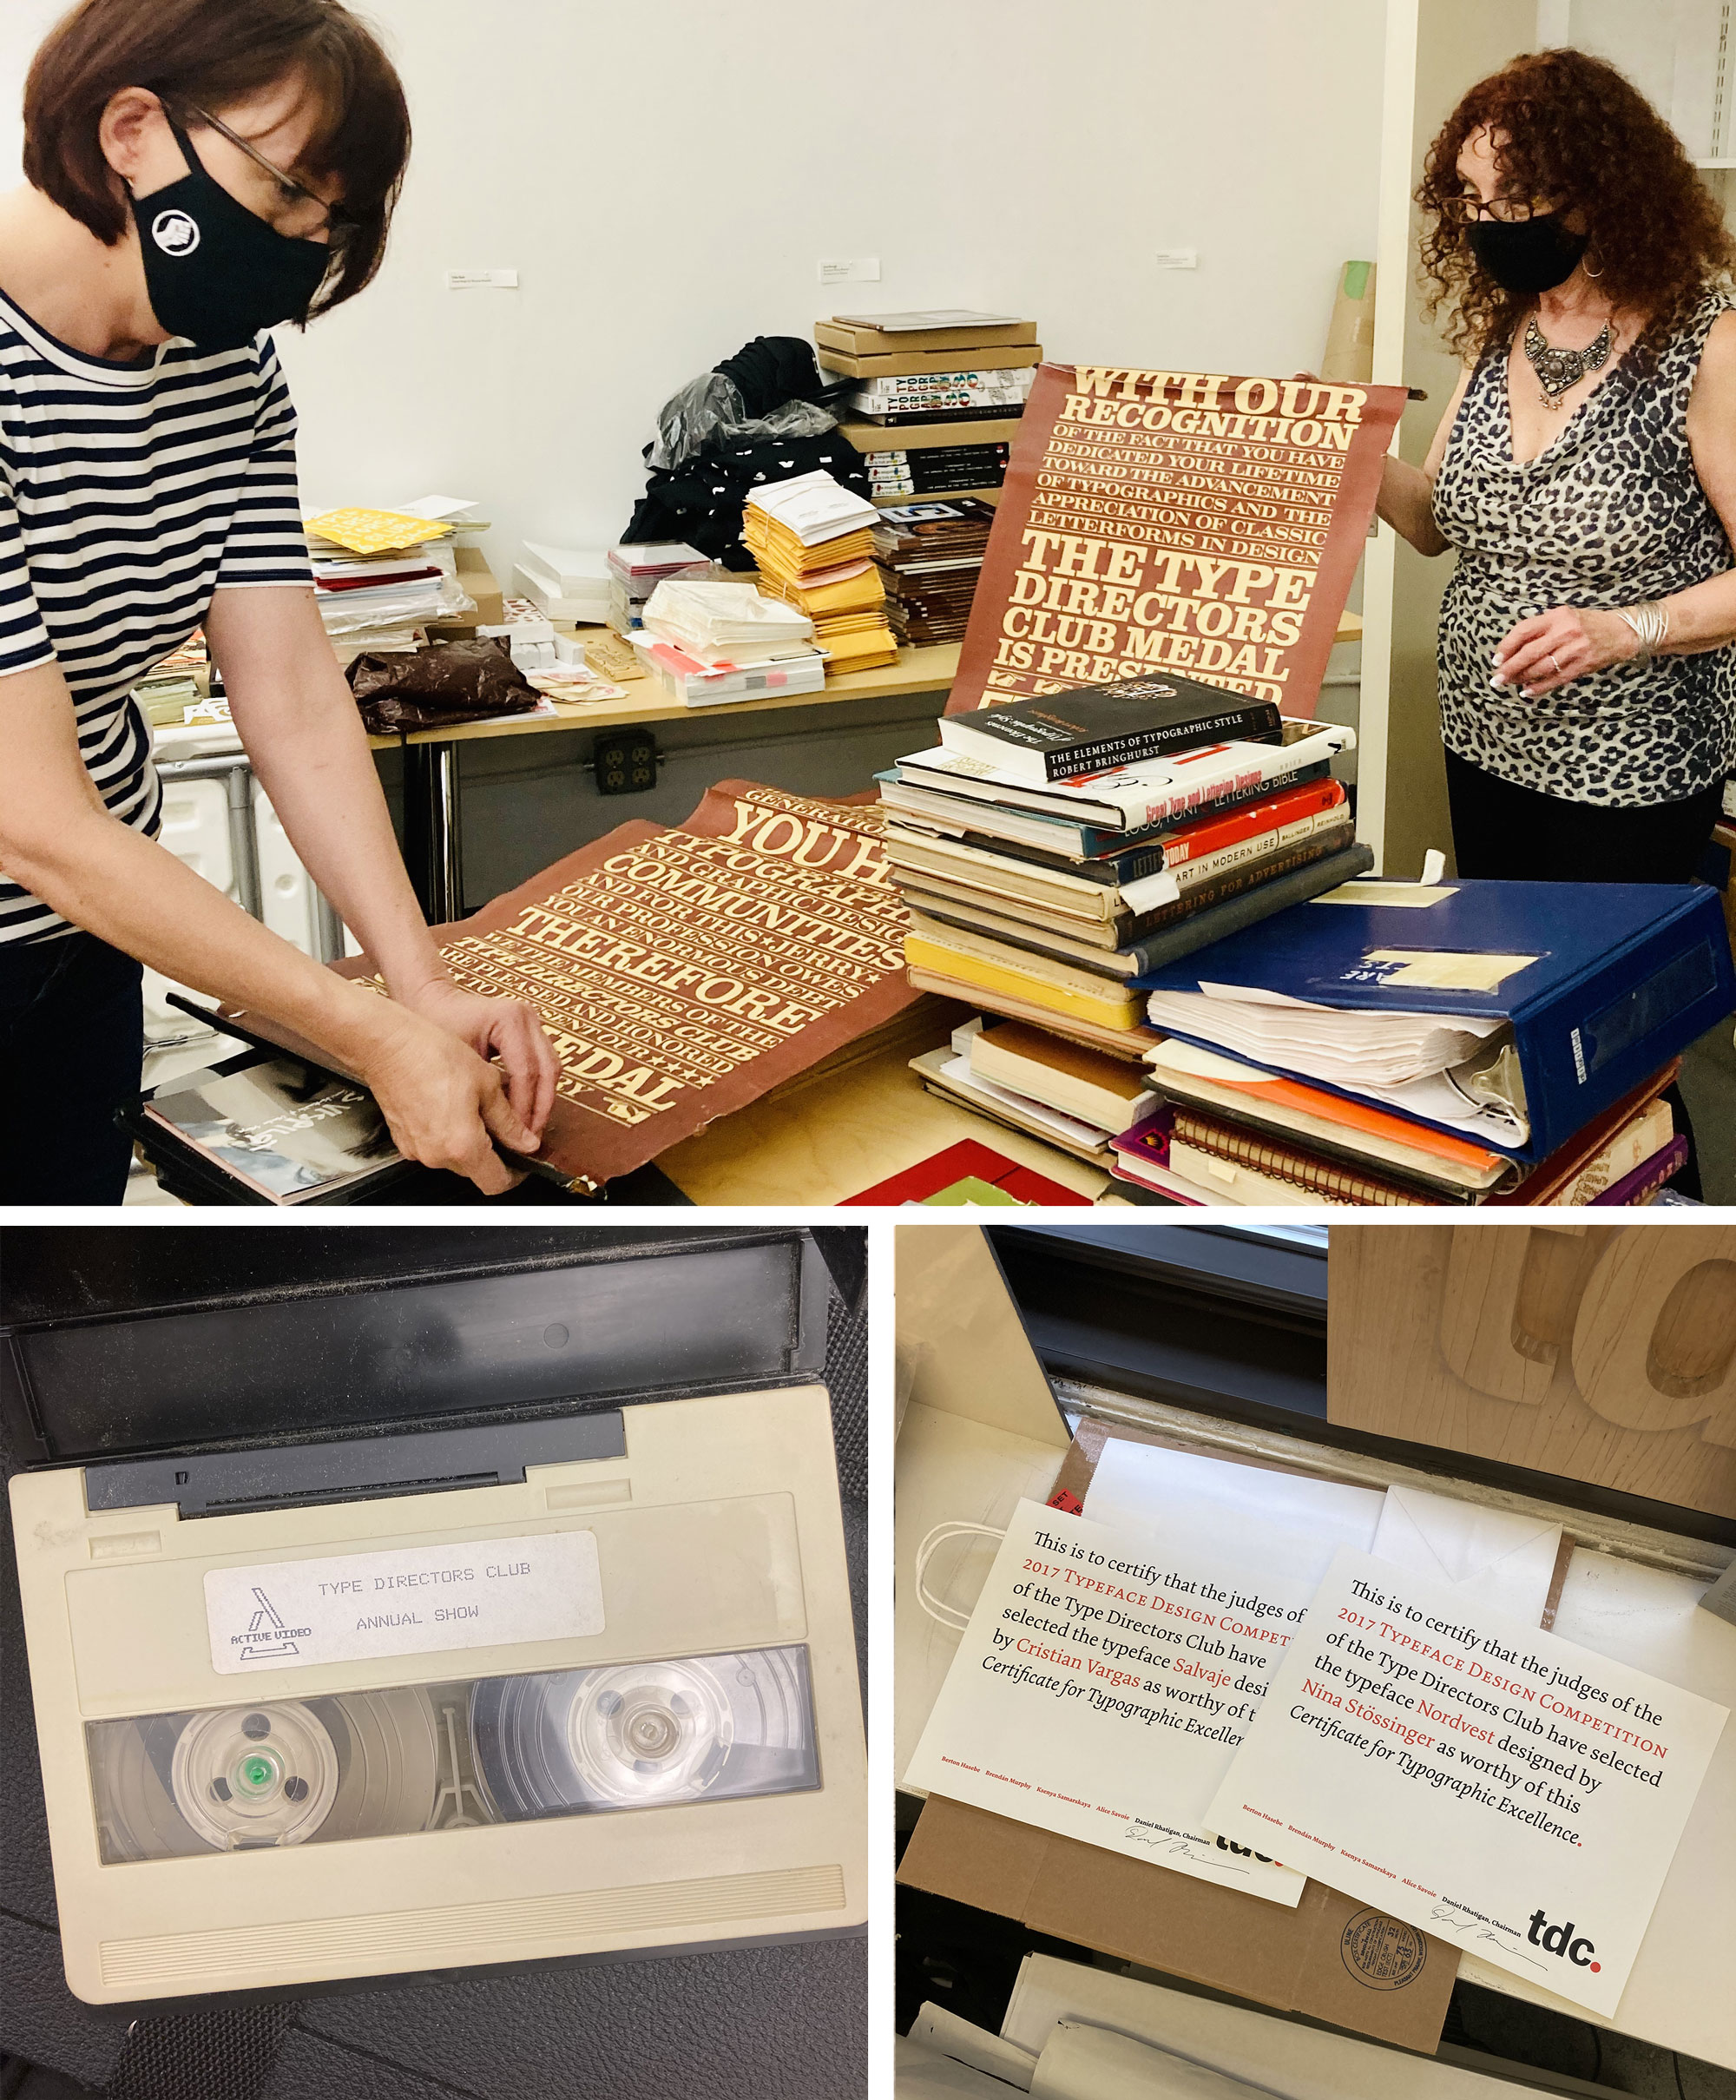 Photos of the TDC archives and staff preparing them for a move